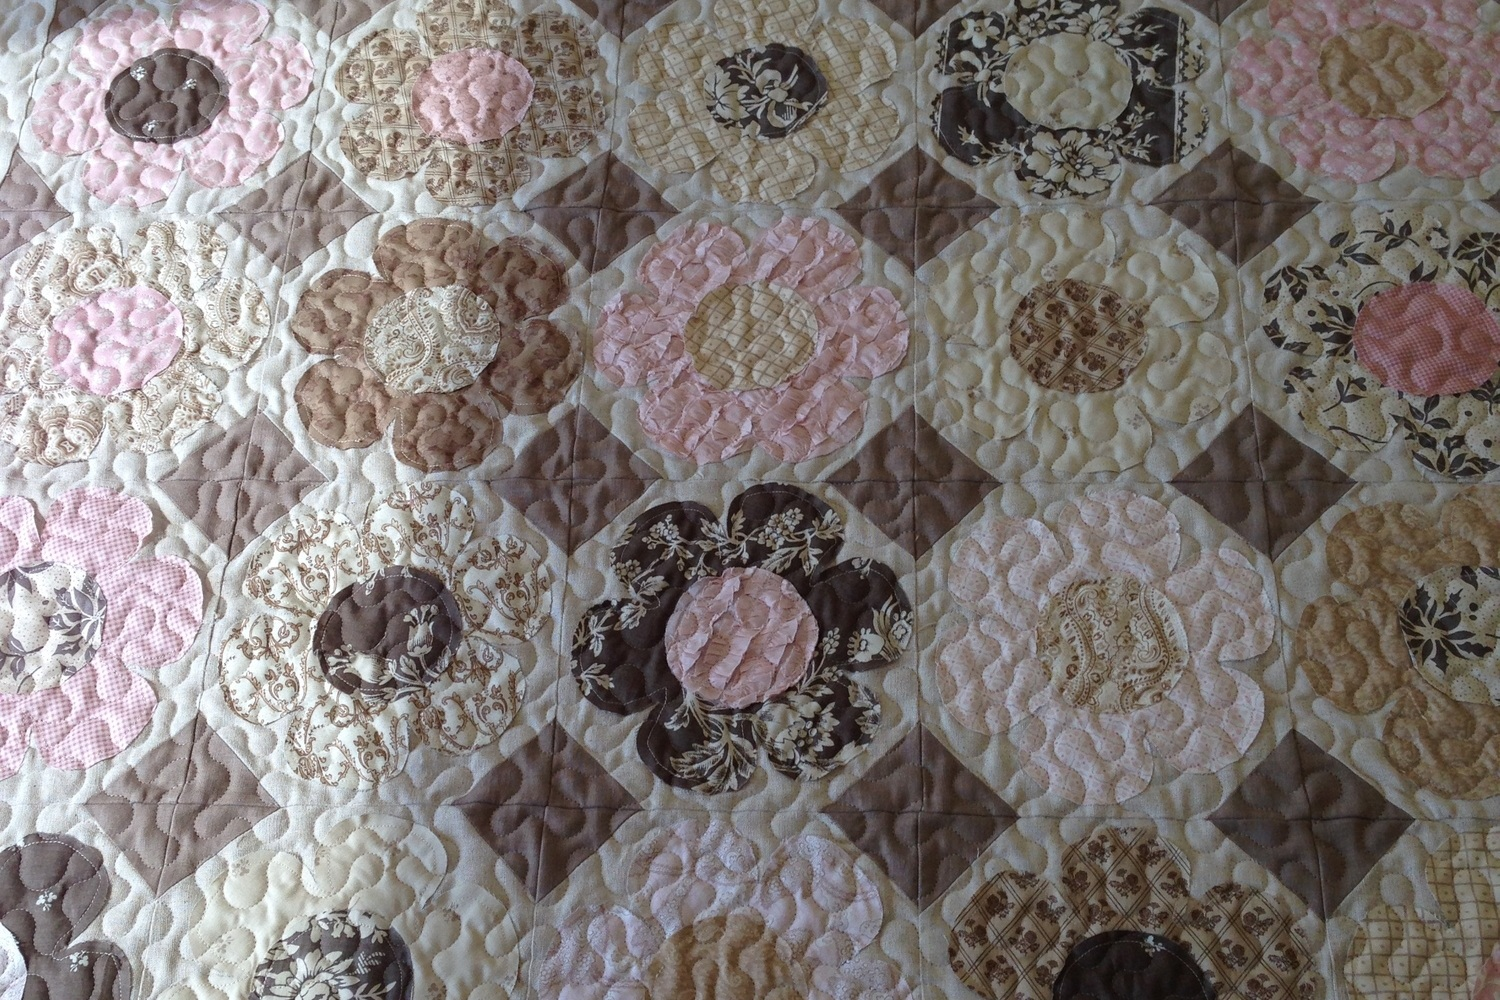 Meander - Our basic meandering pattern adds just the right amount of texture and looks great on most quilts.Default Size: 2 cents per square inch (LxWx$.02)X-Large Size: 1.5 cents per square inch (LxWx$.015)